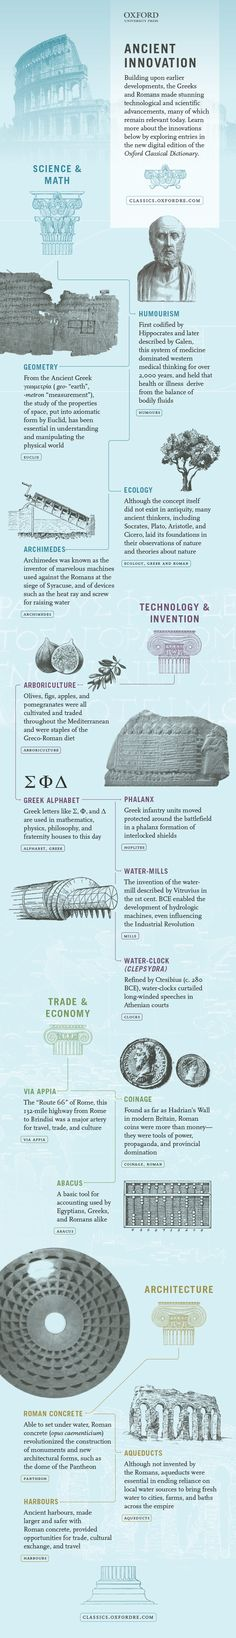 The influence of violence in the ancient world